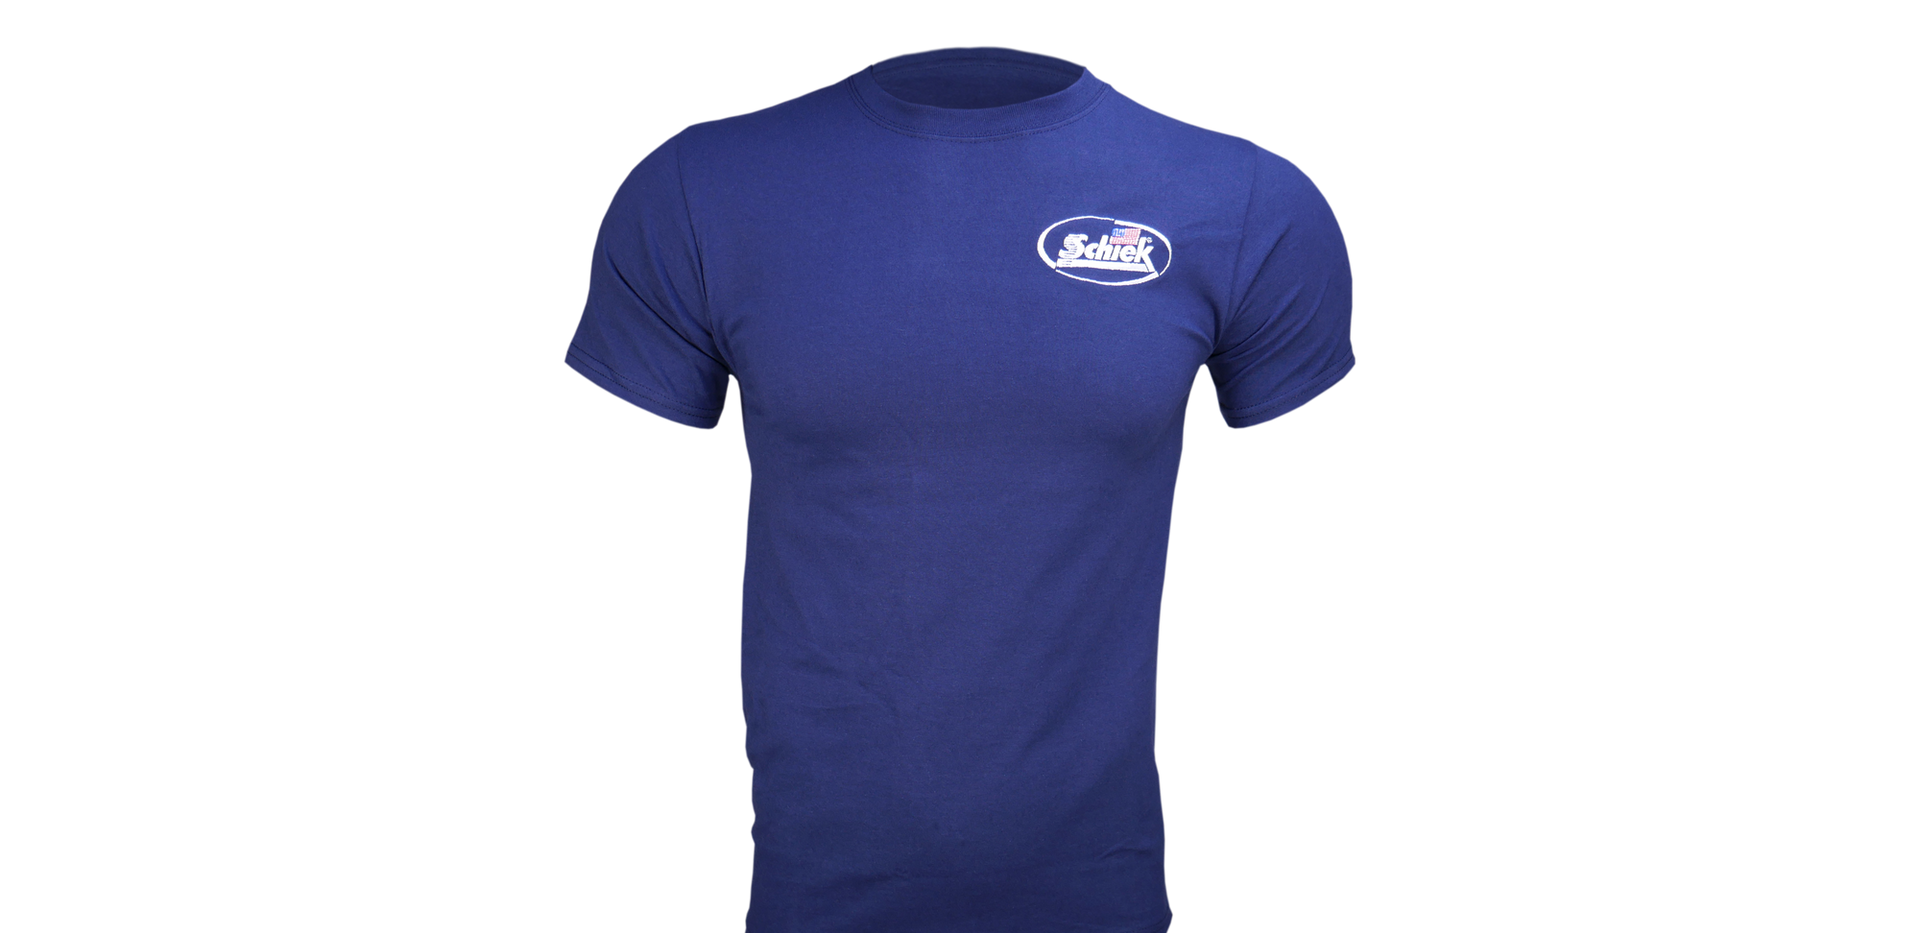 tshirt cotton navy.png